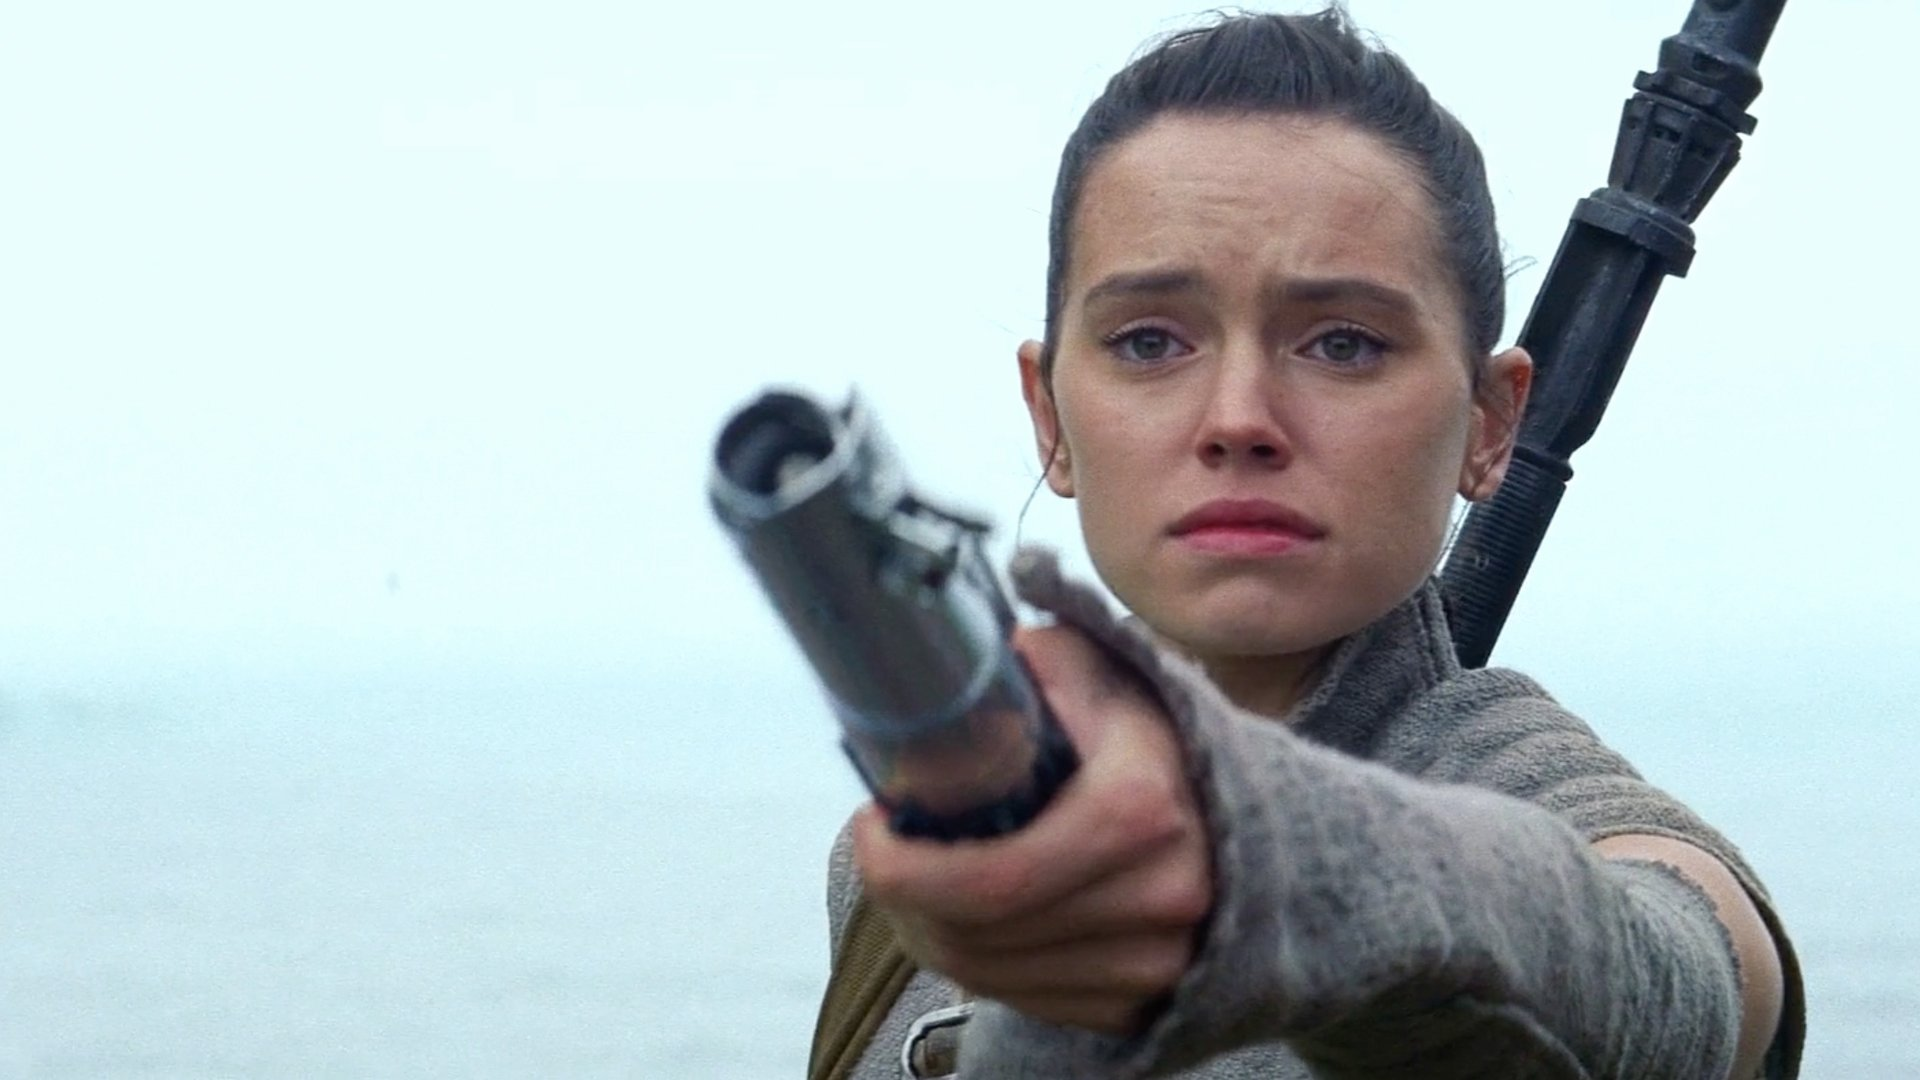 Underwater Actress Almost Played Star Wars' Rey After Grueling 6-Month Audition